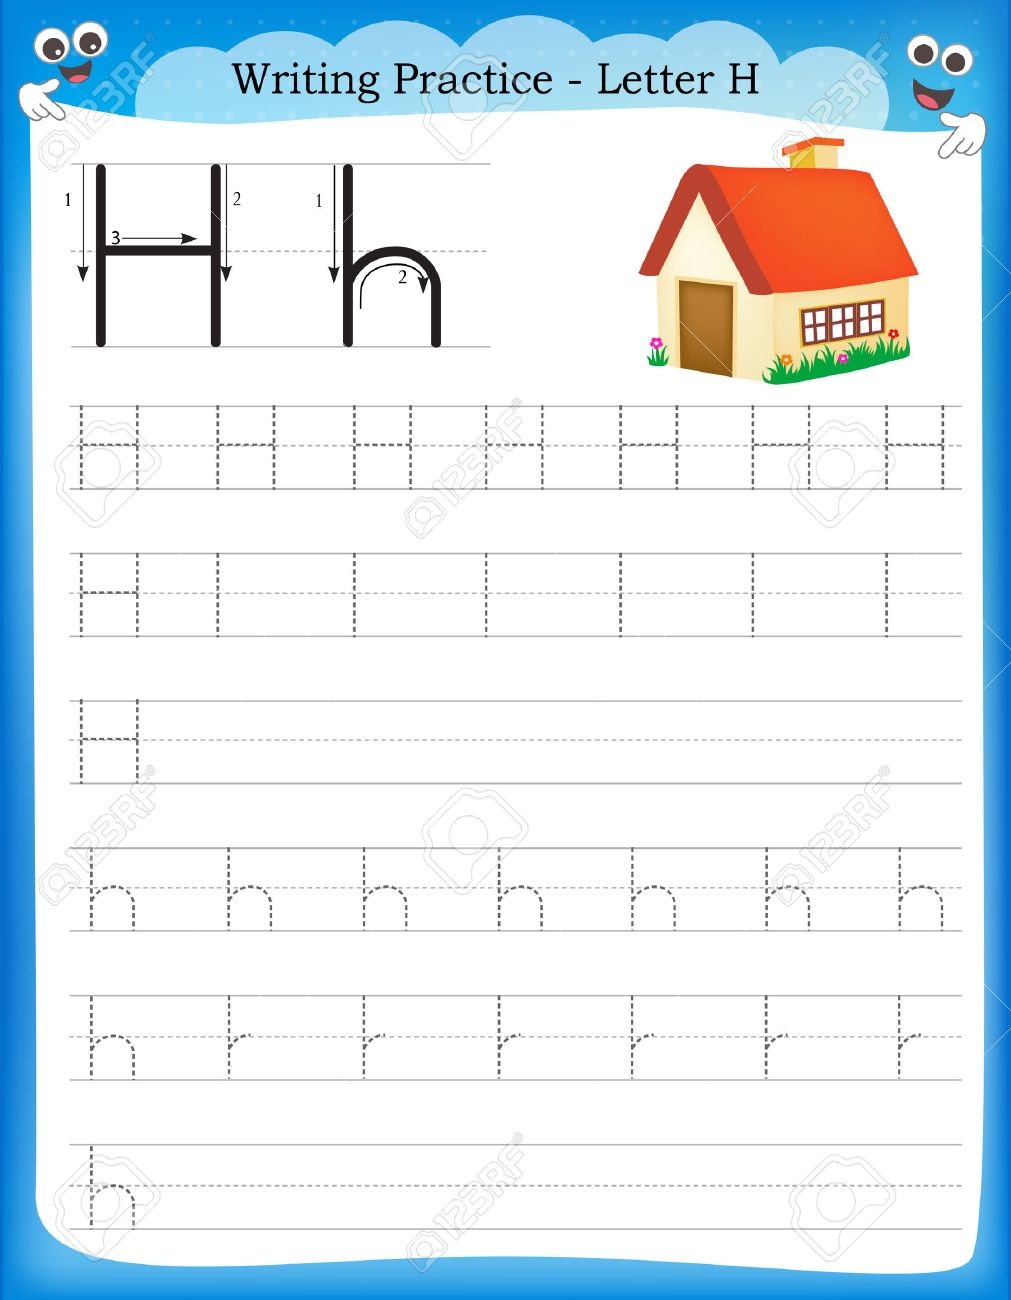 Writing Practice Letter H Printable Worksheet For Preschool ...